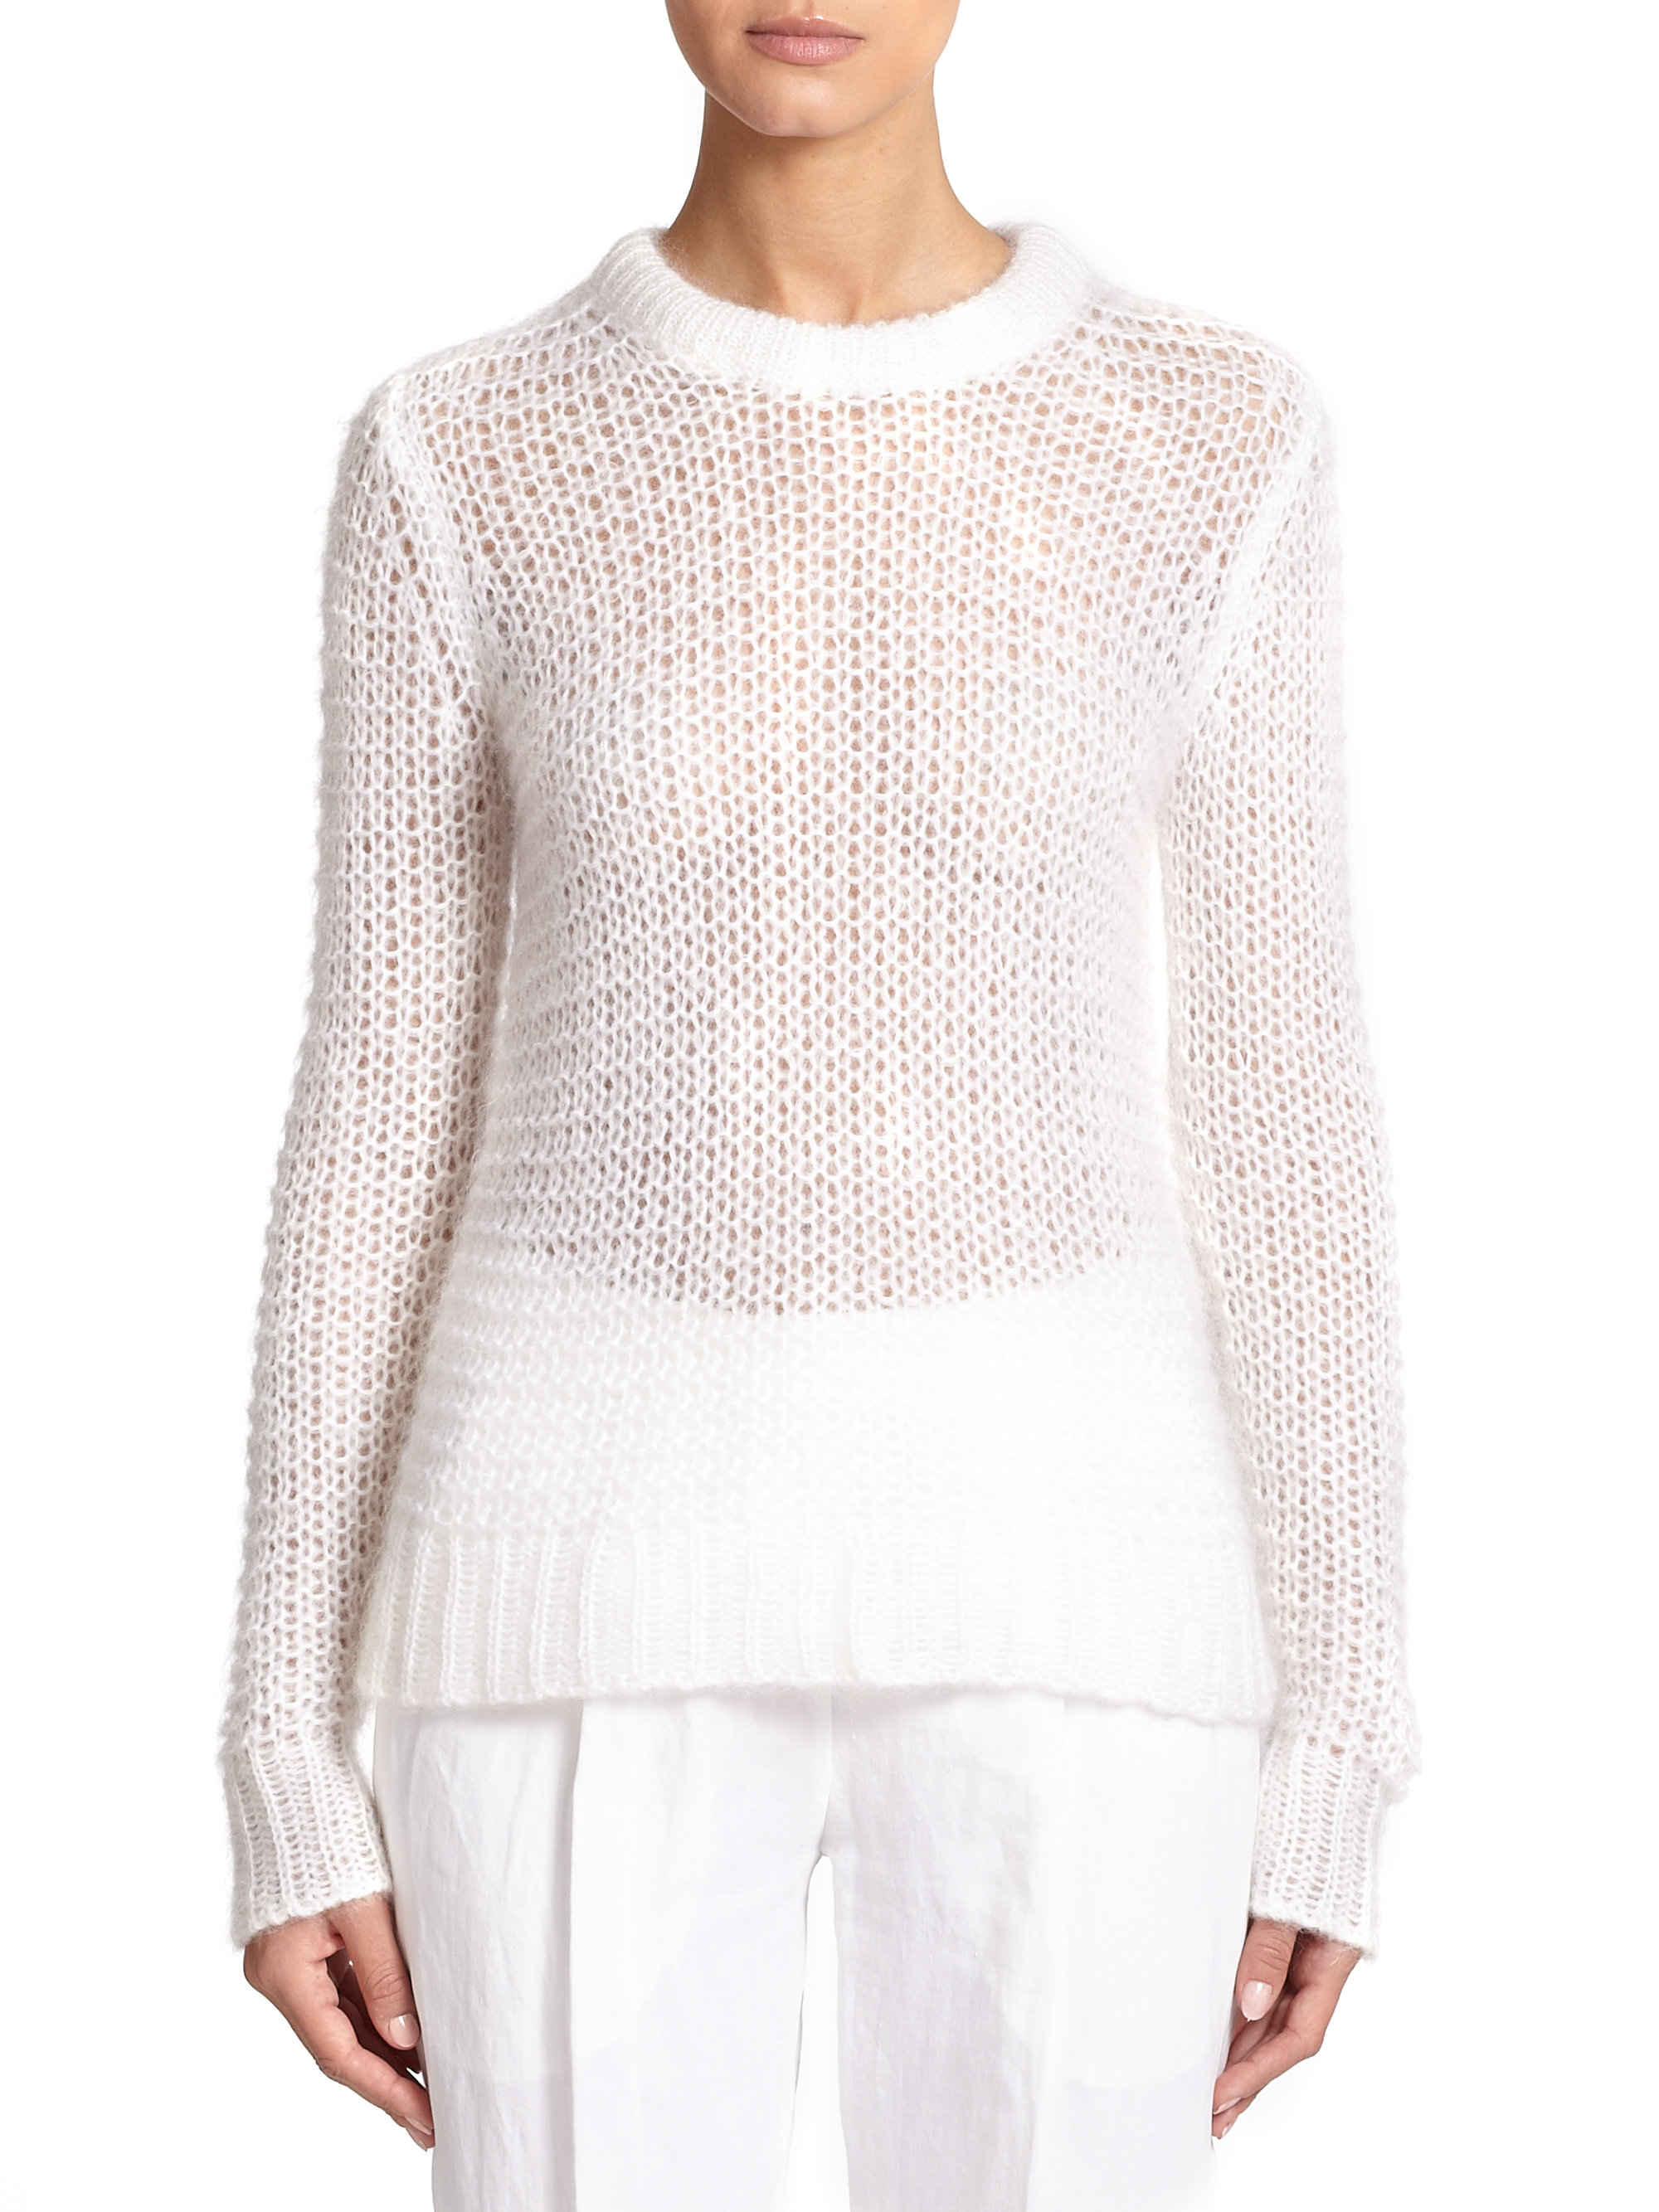 michael kors mohair open knit sweater in white lyst. Black Bedroom Furniture Sets. Home Design Ideas